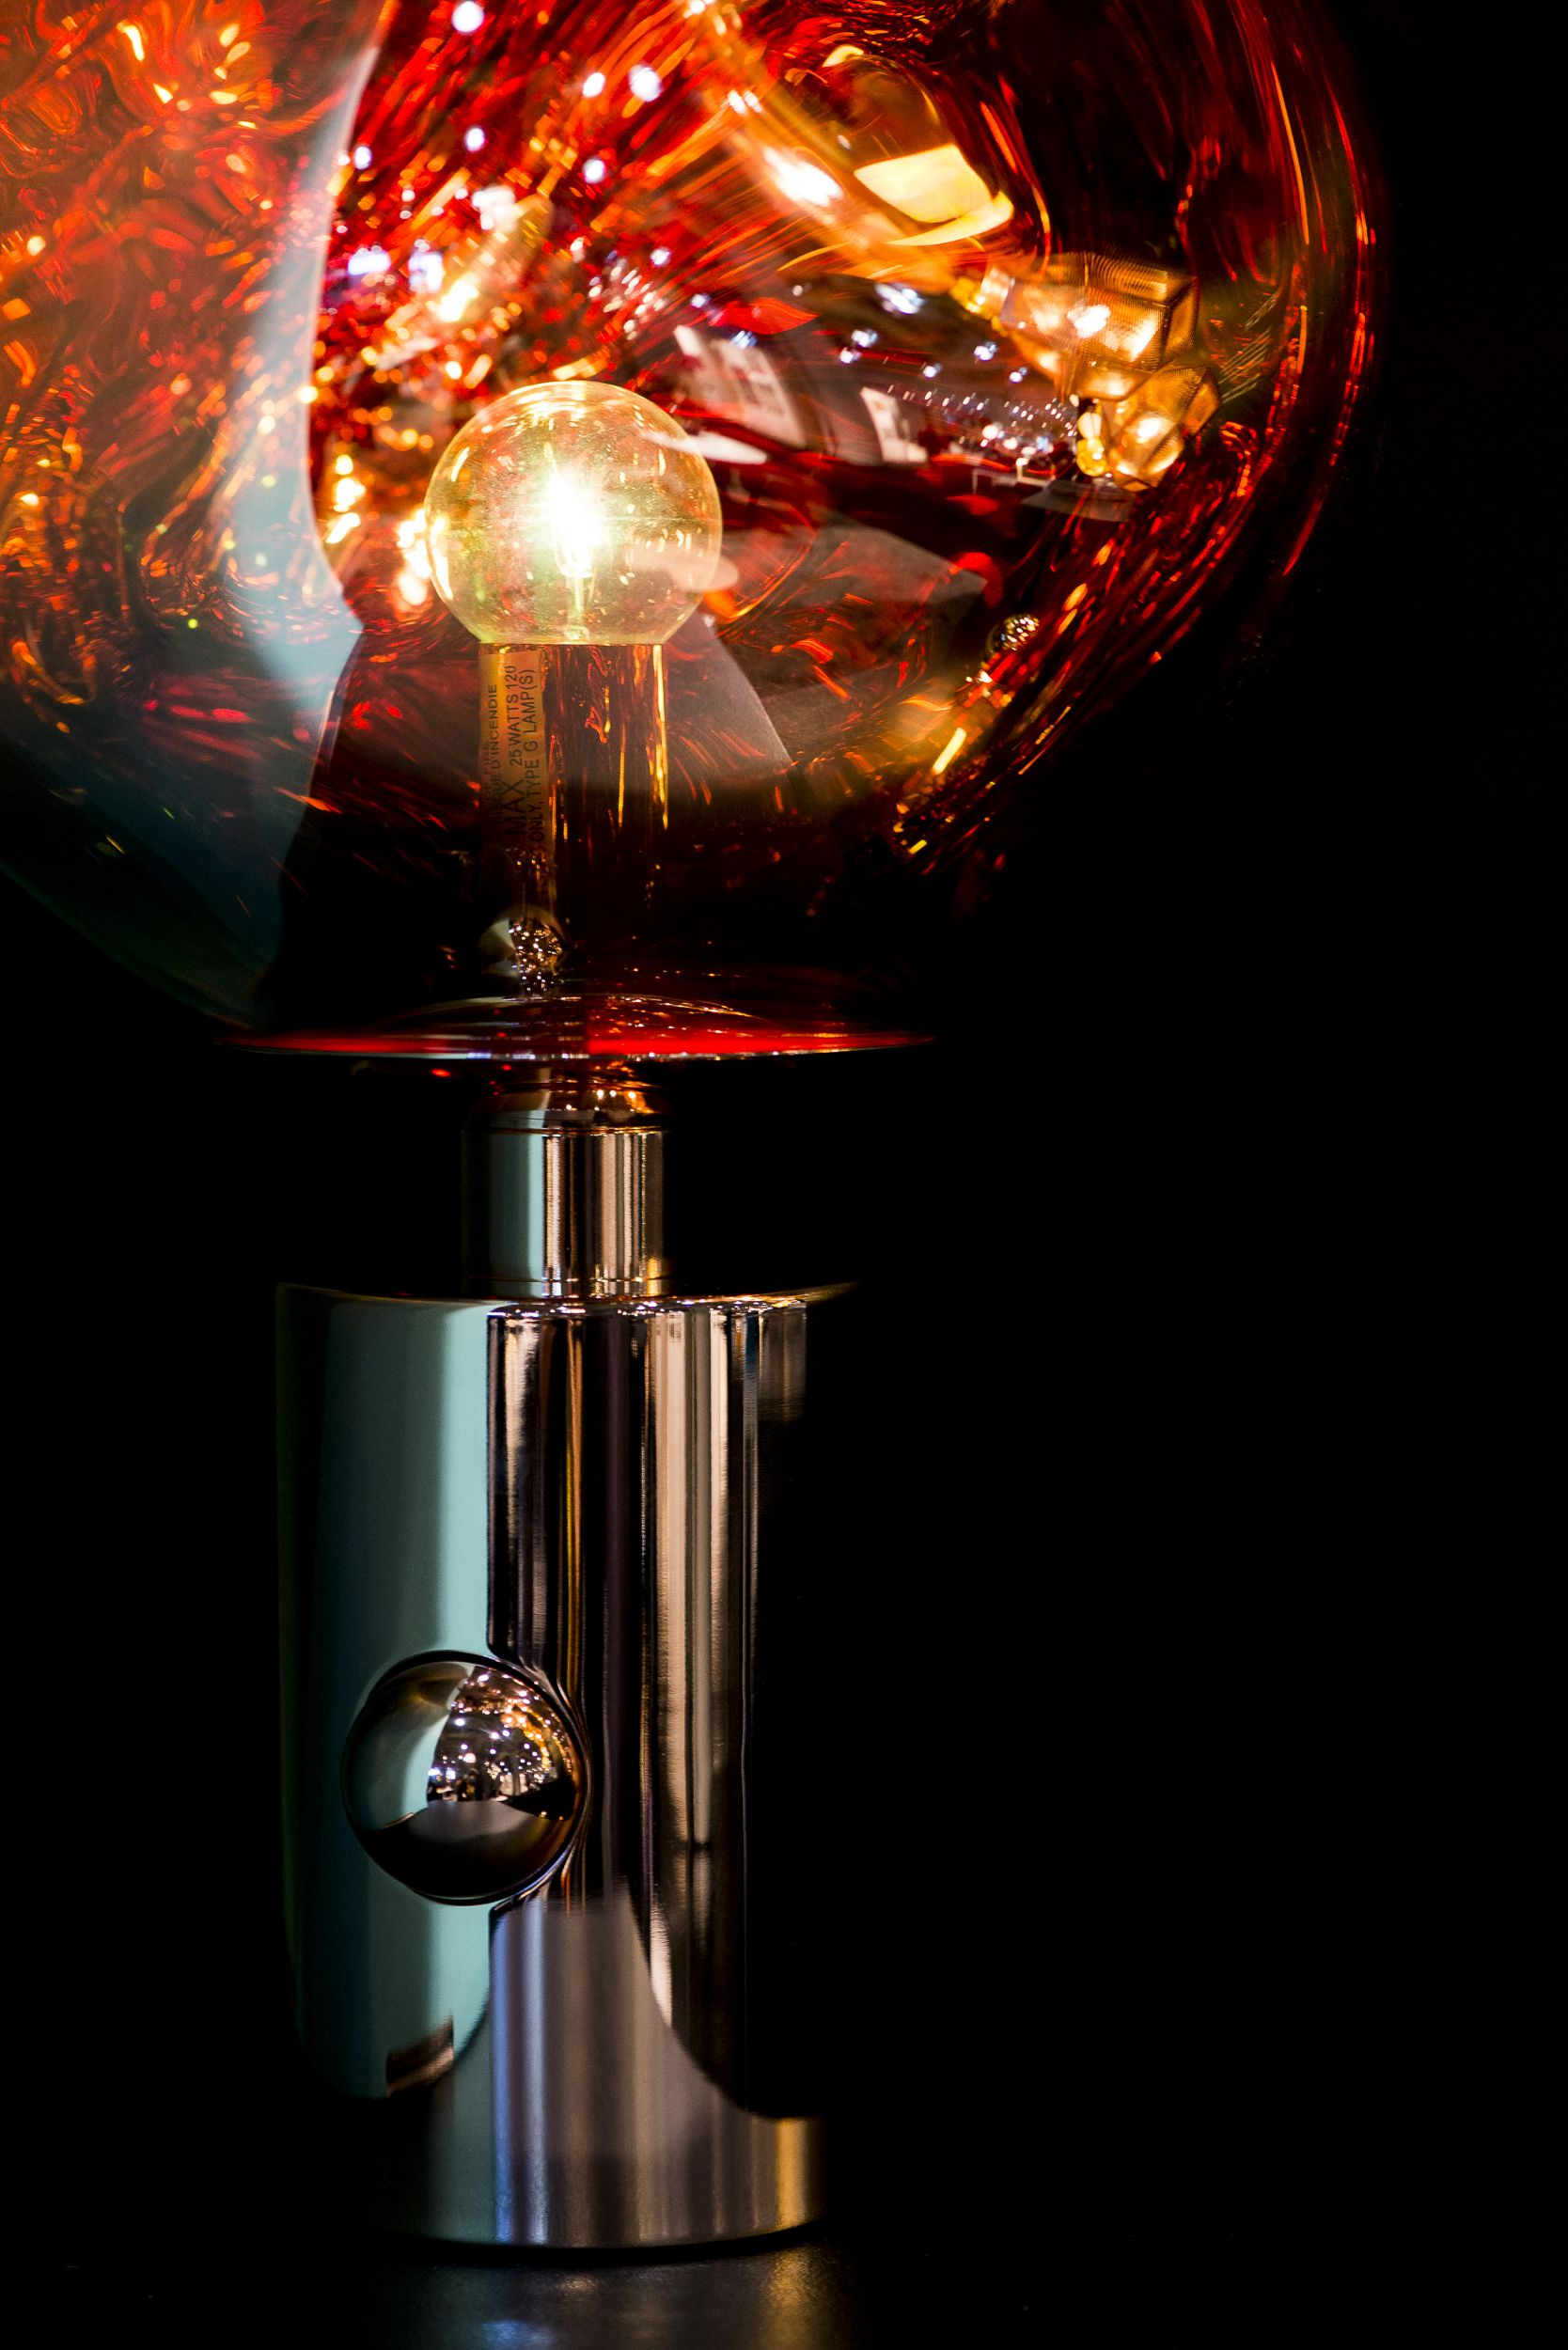 Tom Dixon S Melt Table Light Details Melt Is A Beautifully Distorted Lighting Globe That Creates A Mesmerizing Melting Hot Light Table Lights Hotel Light